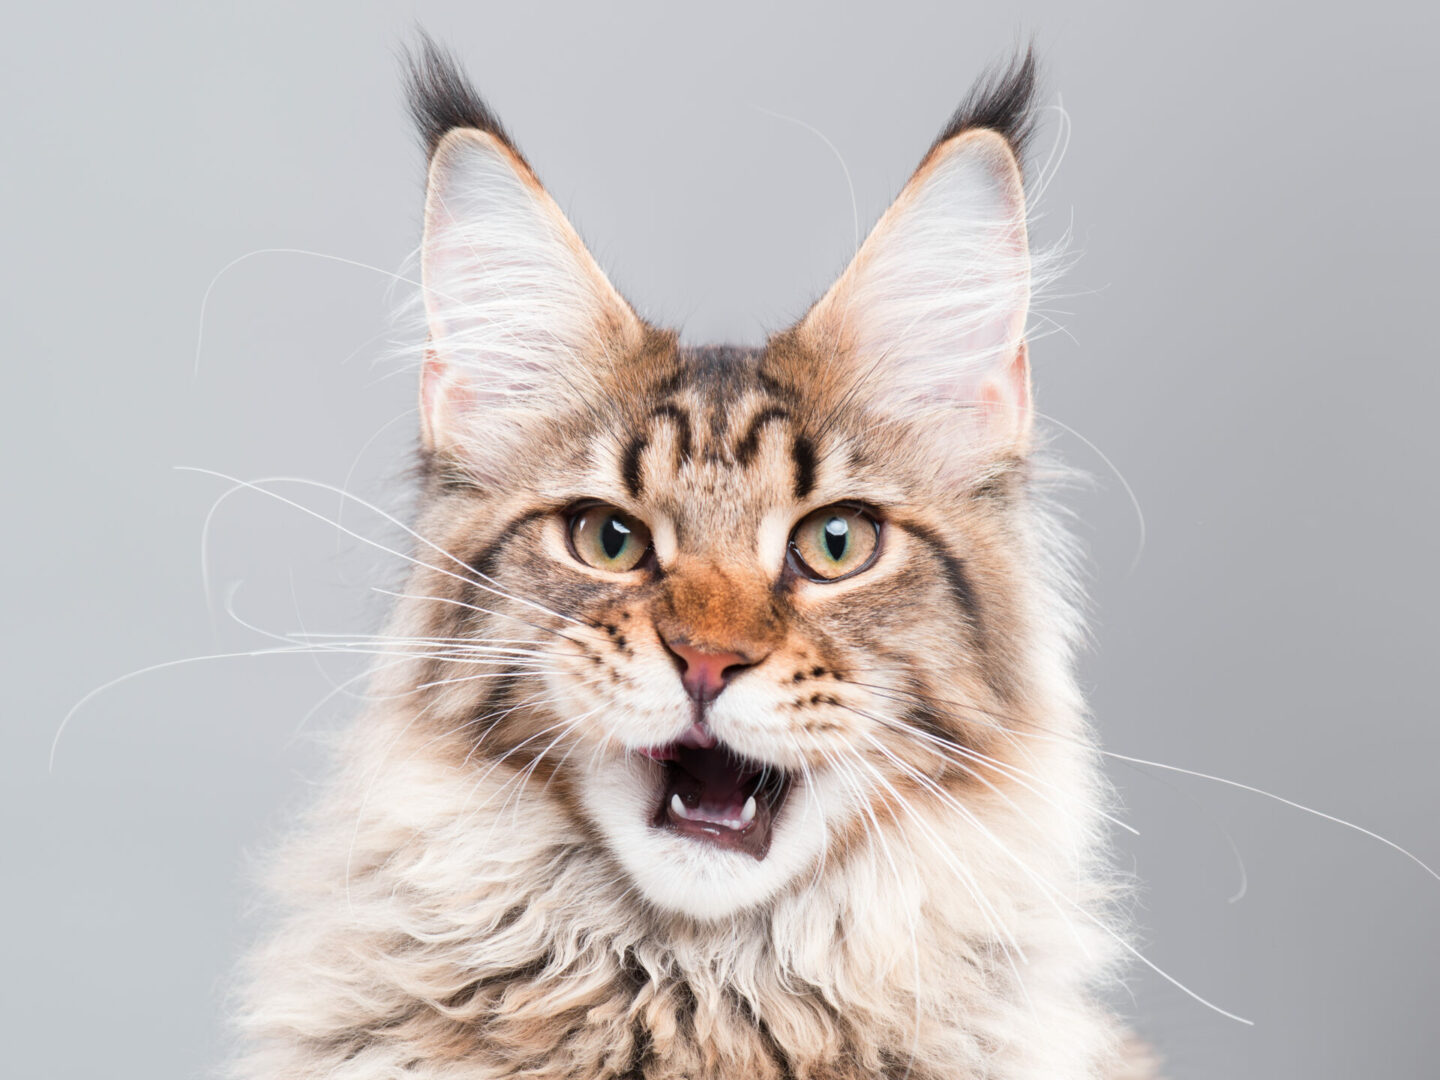 Maine Coon cat meowing